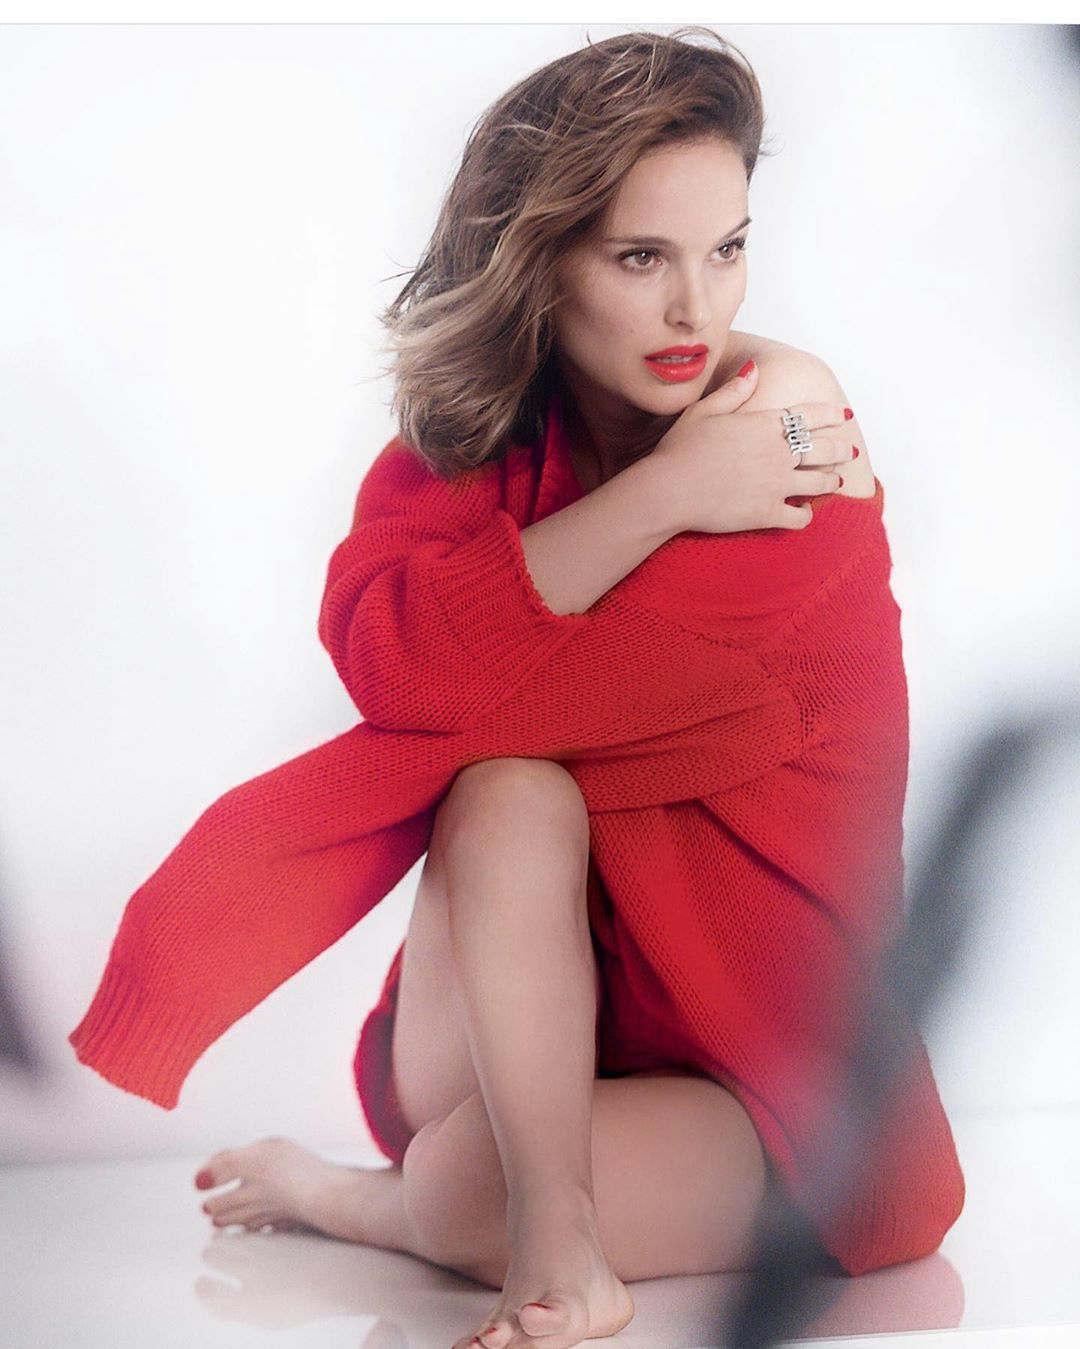 Natalie Portman comes forward to defend Marvel movies against criticism by Martin Scorsese